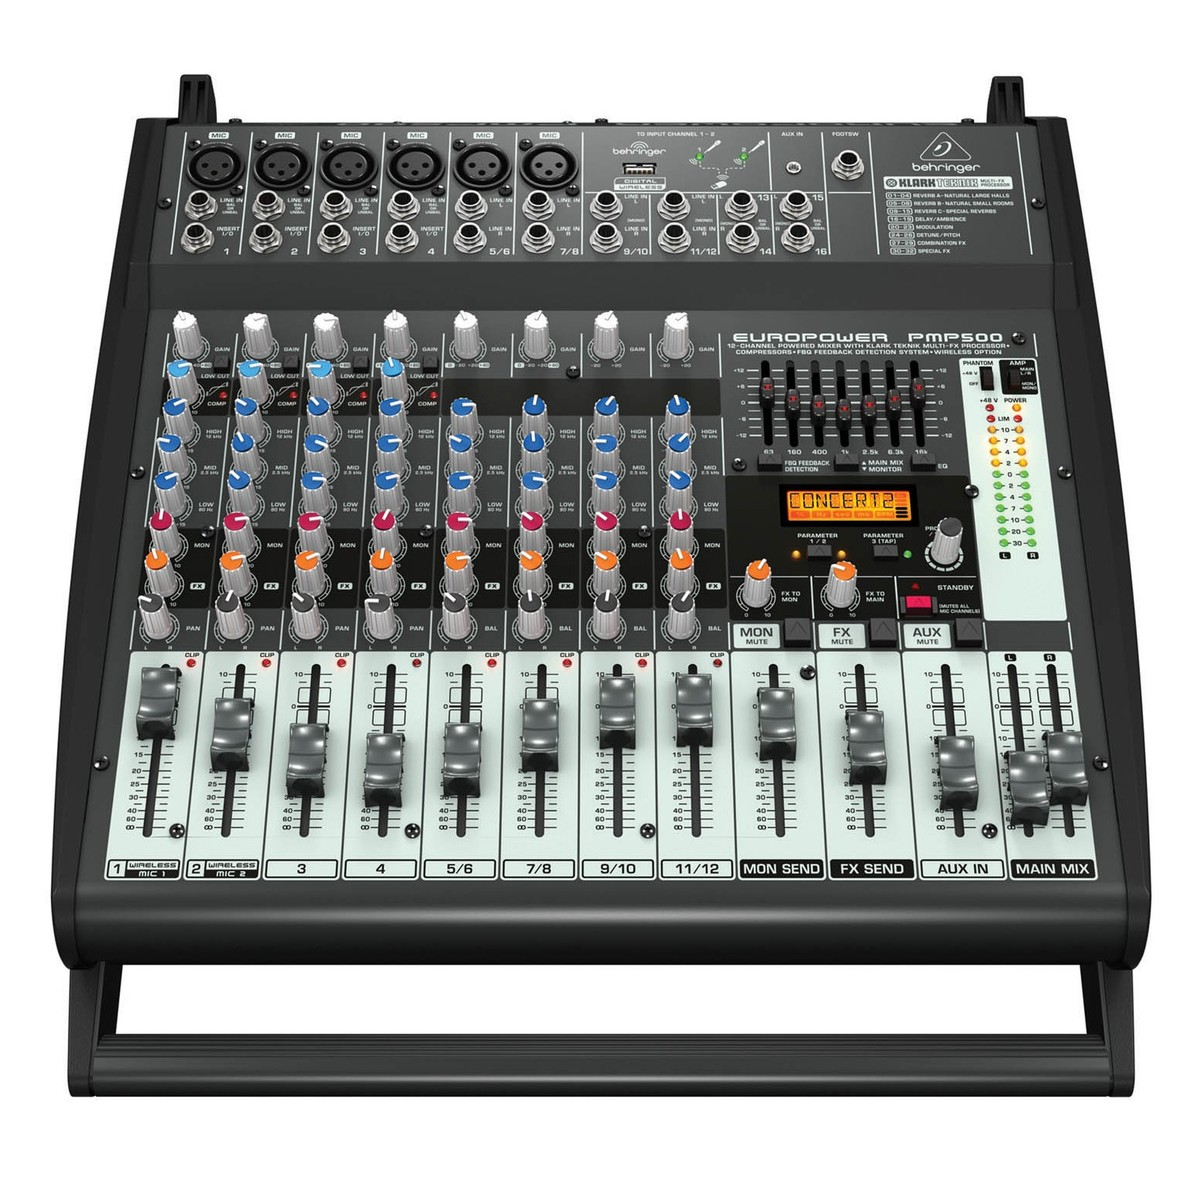 behringer pmp500 europower mixer amplifier at gear4music. Black Bedroom Furniture Sets. Home Design Ideas